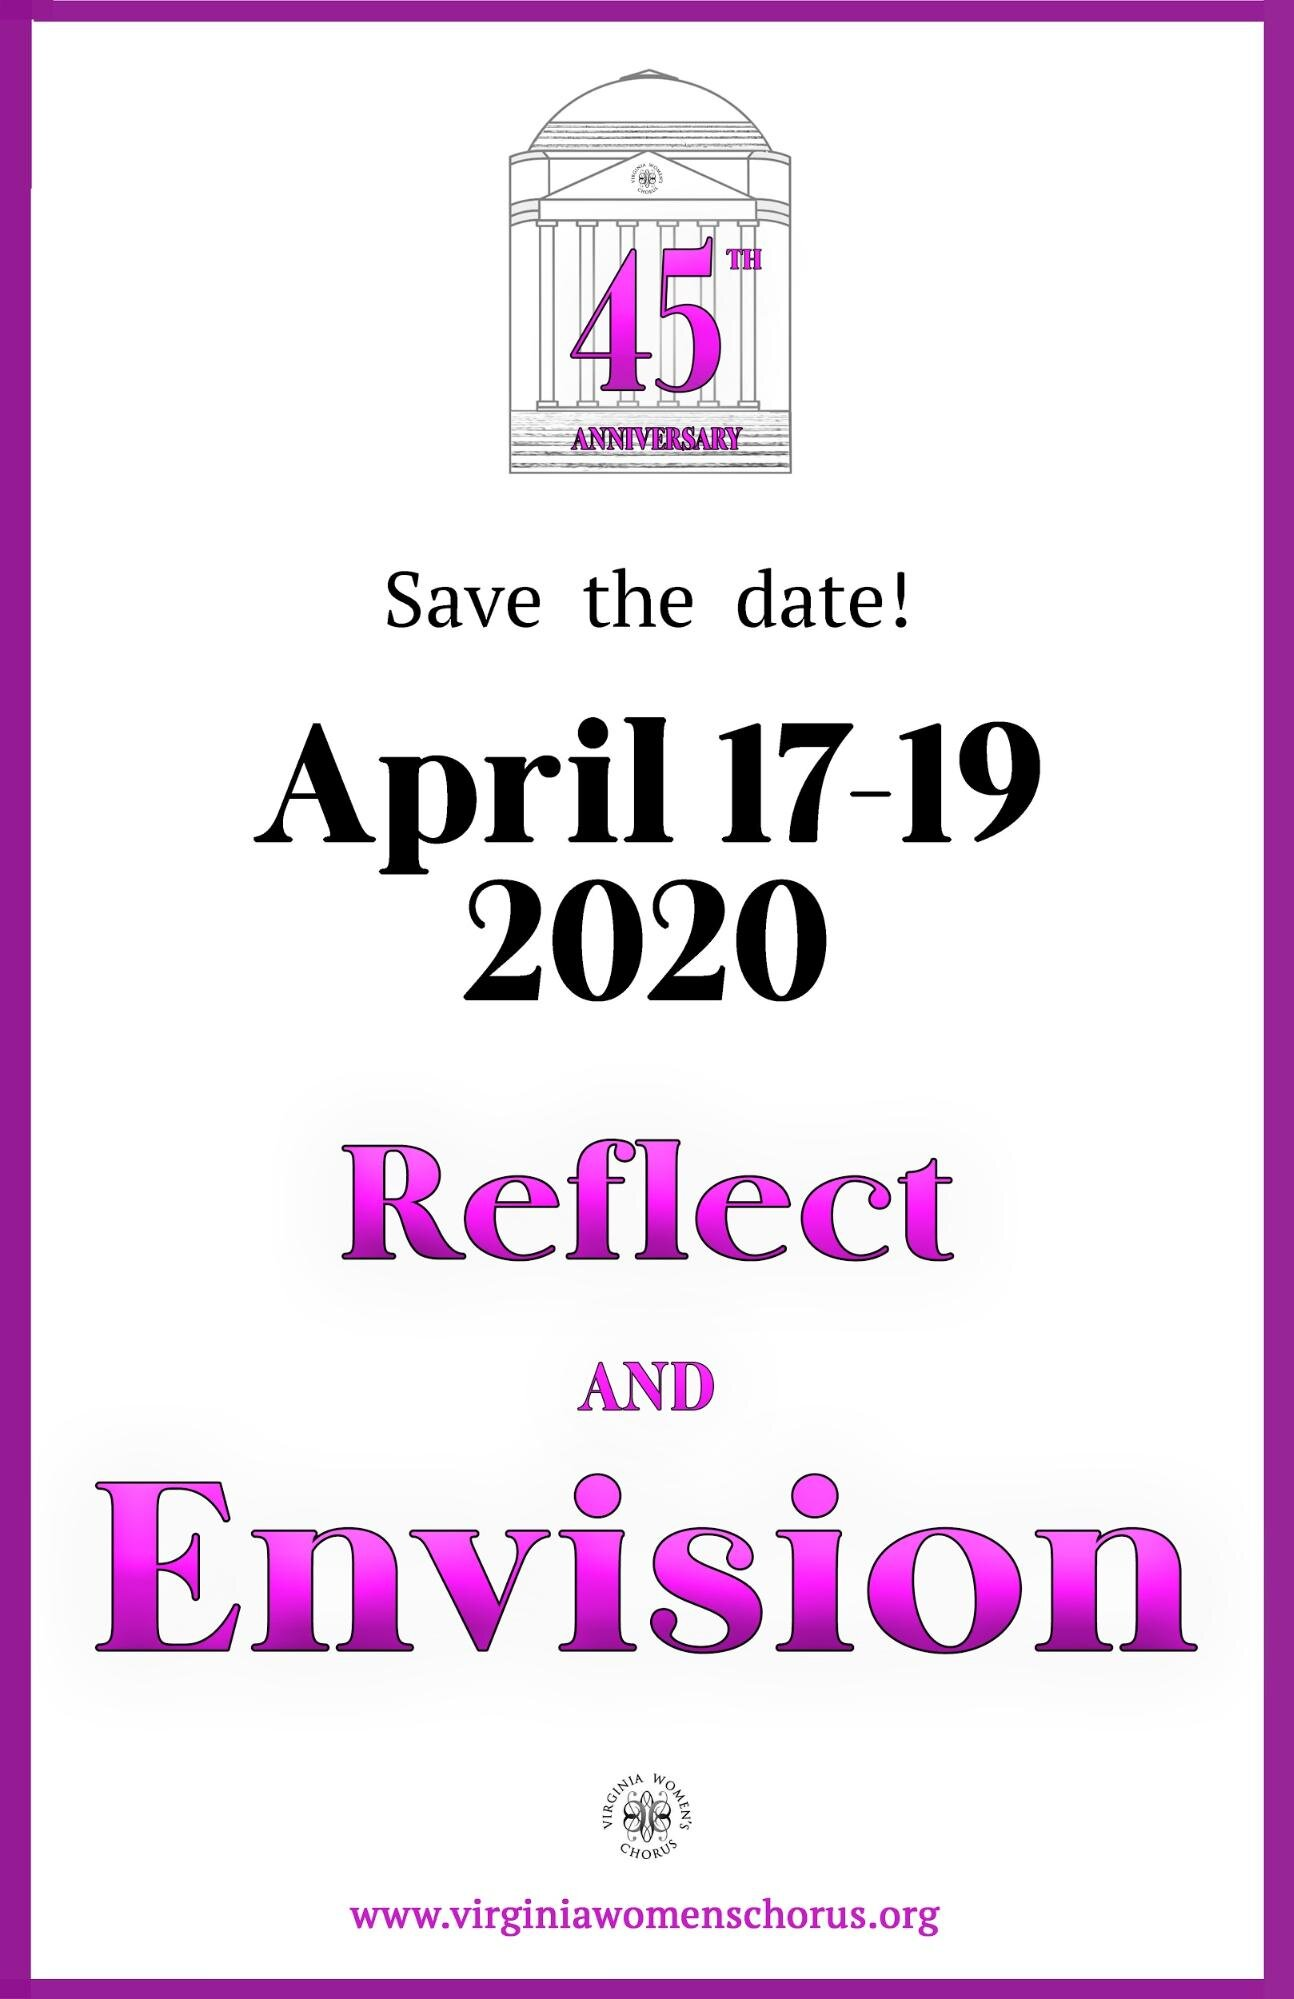 Save the date for our 45th anniversary! April 17-19, 2020: Reflect and Envision.